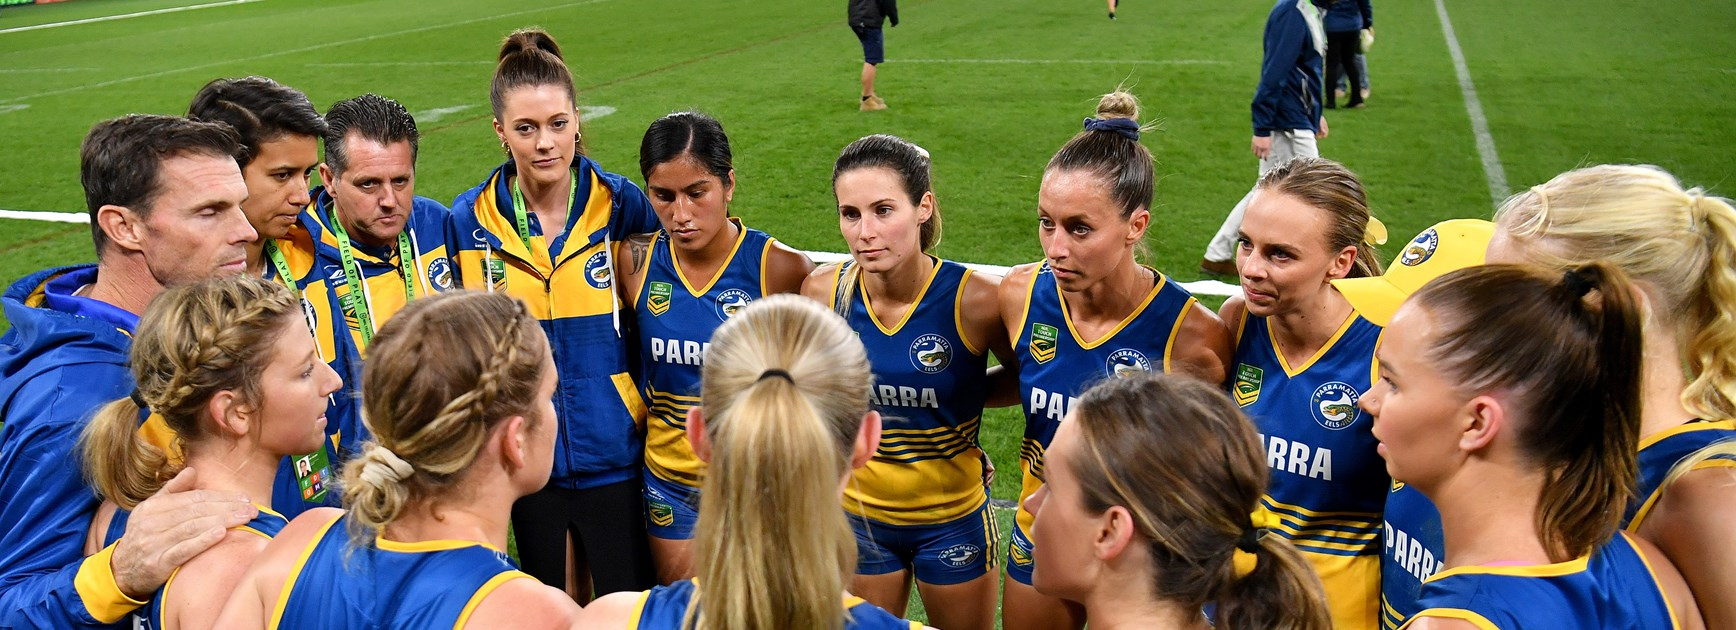 Eels Women's Touch Premiership side through to Grand Final